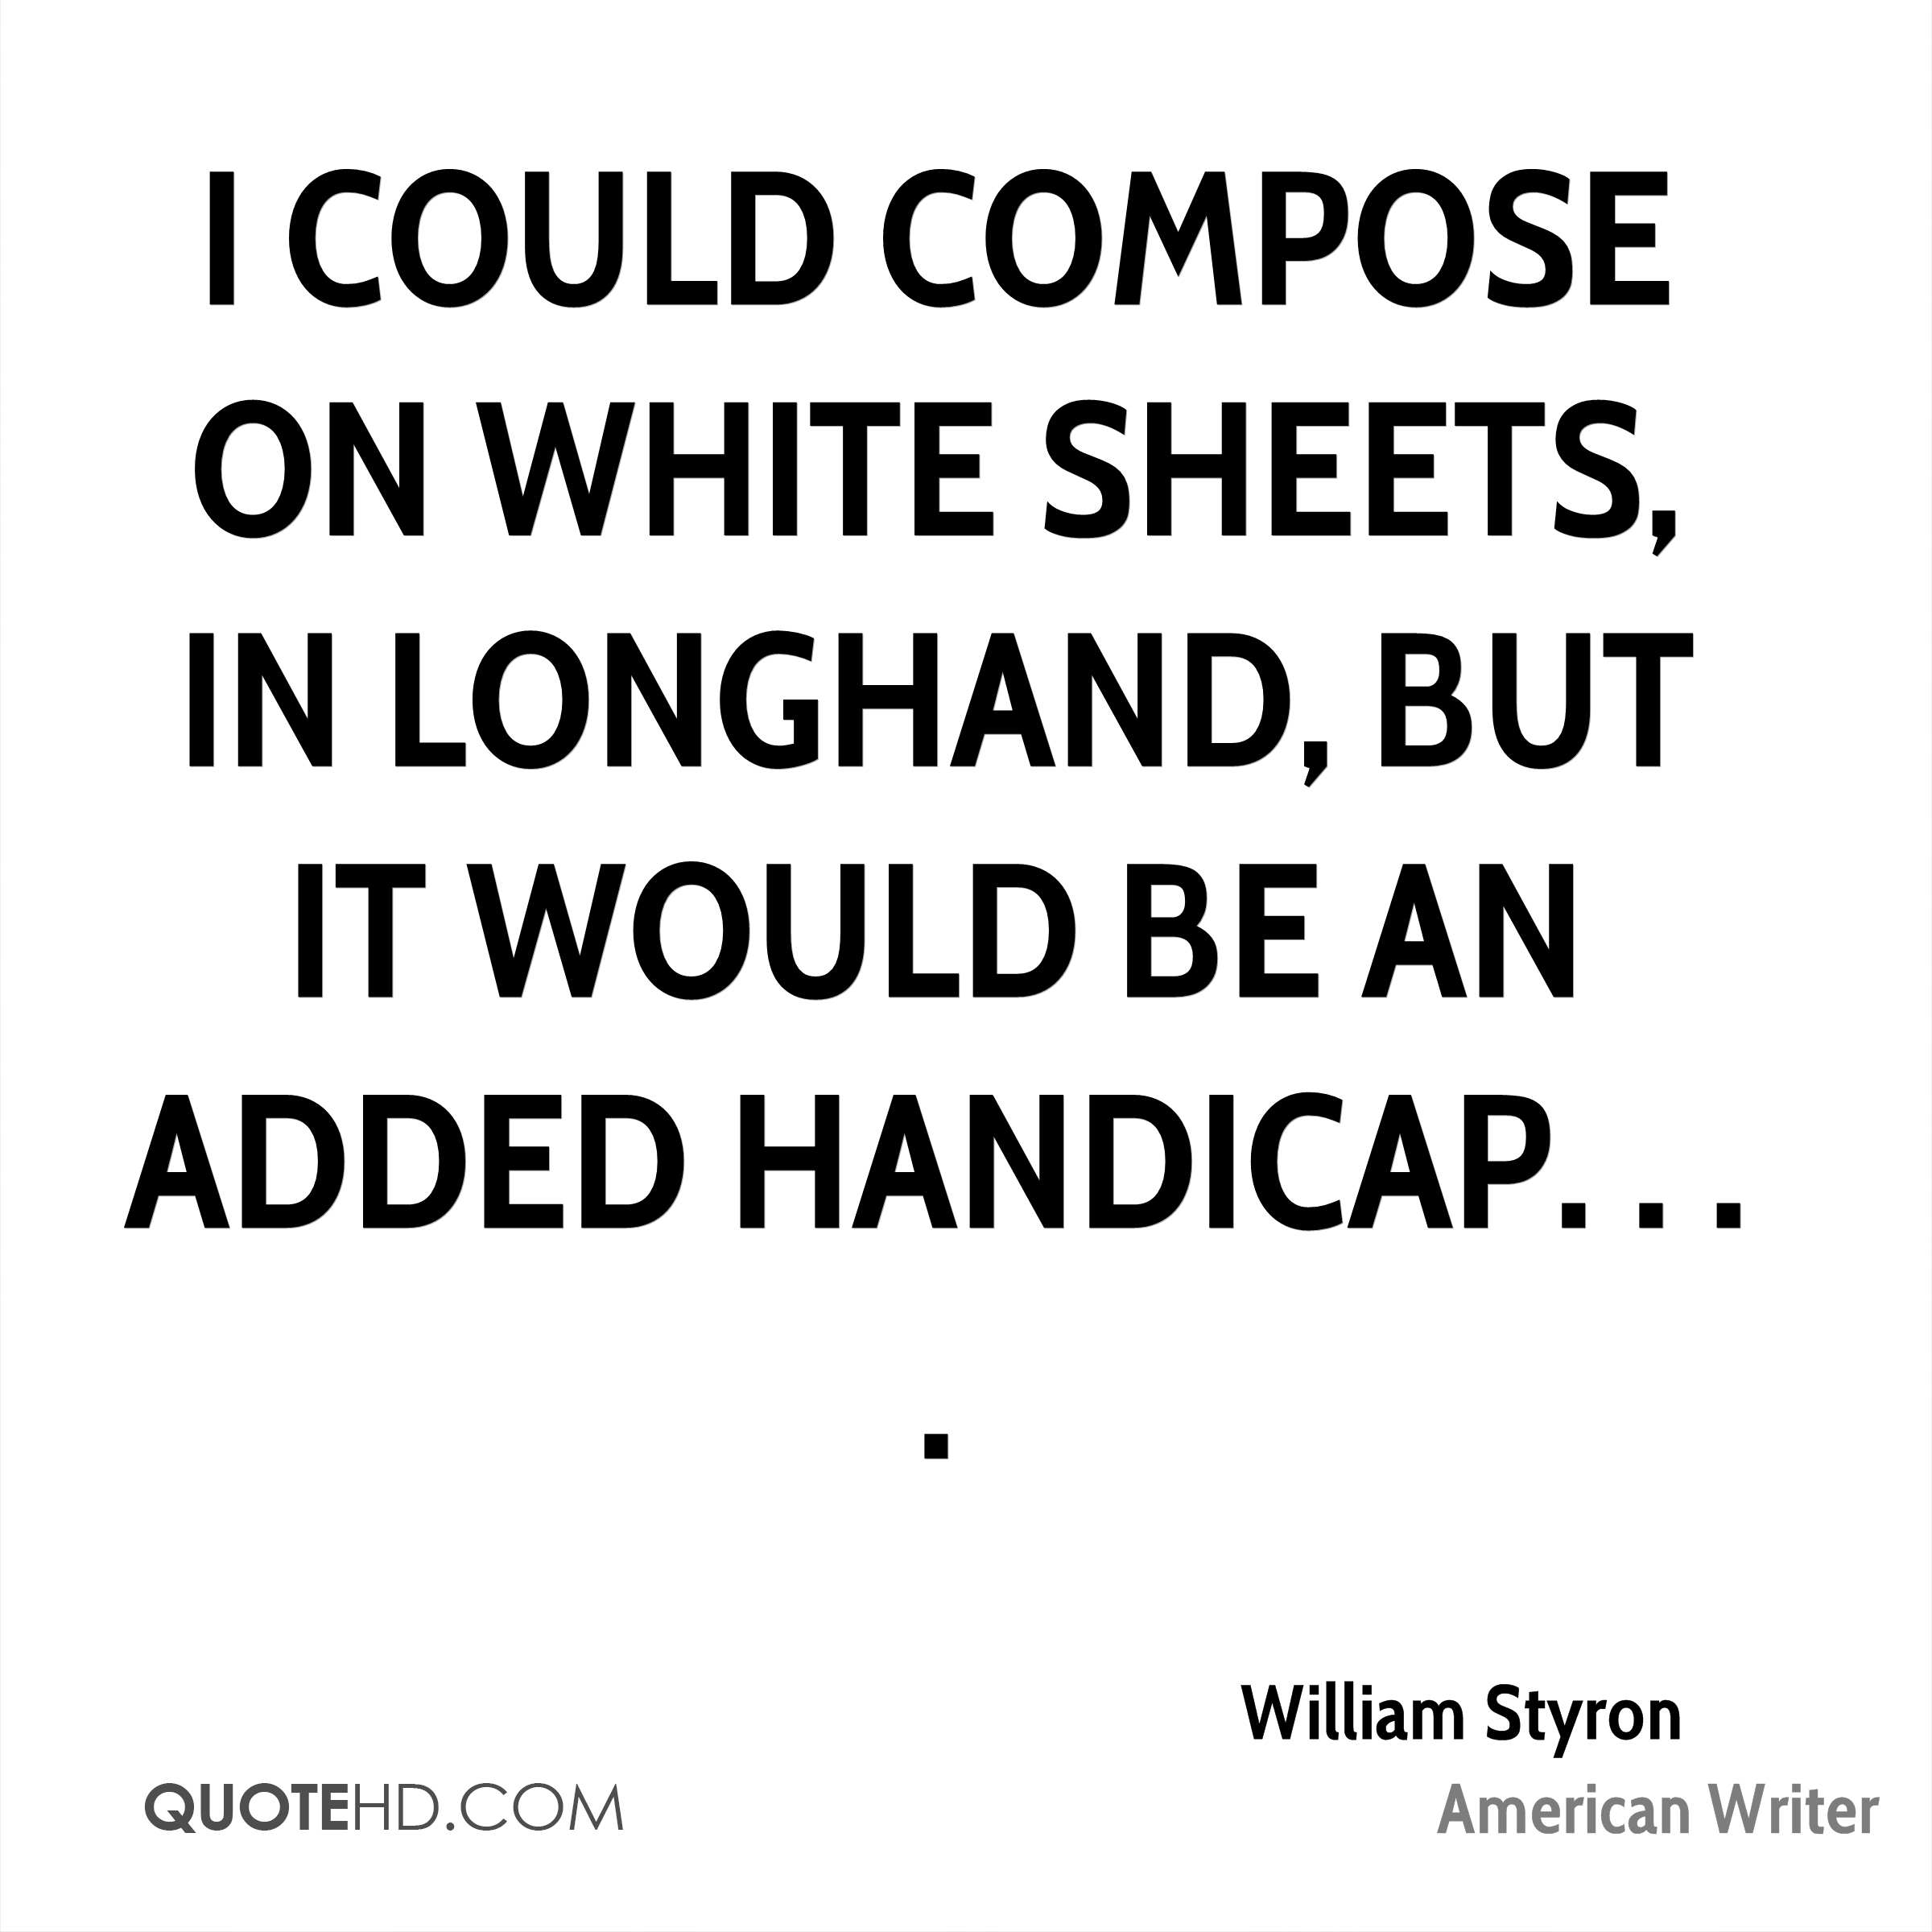 I could compose on white sheets, in longhand, but it would be an added handicap. . . .